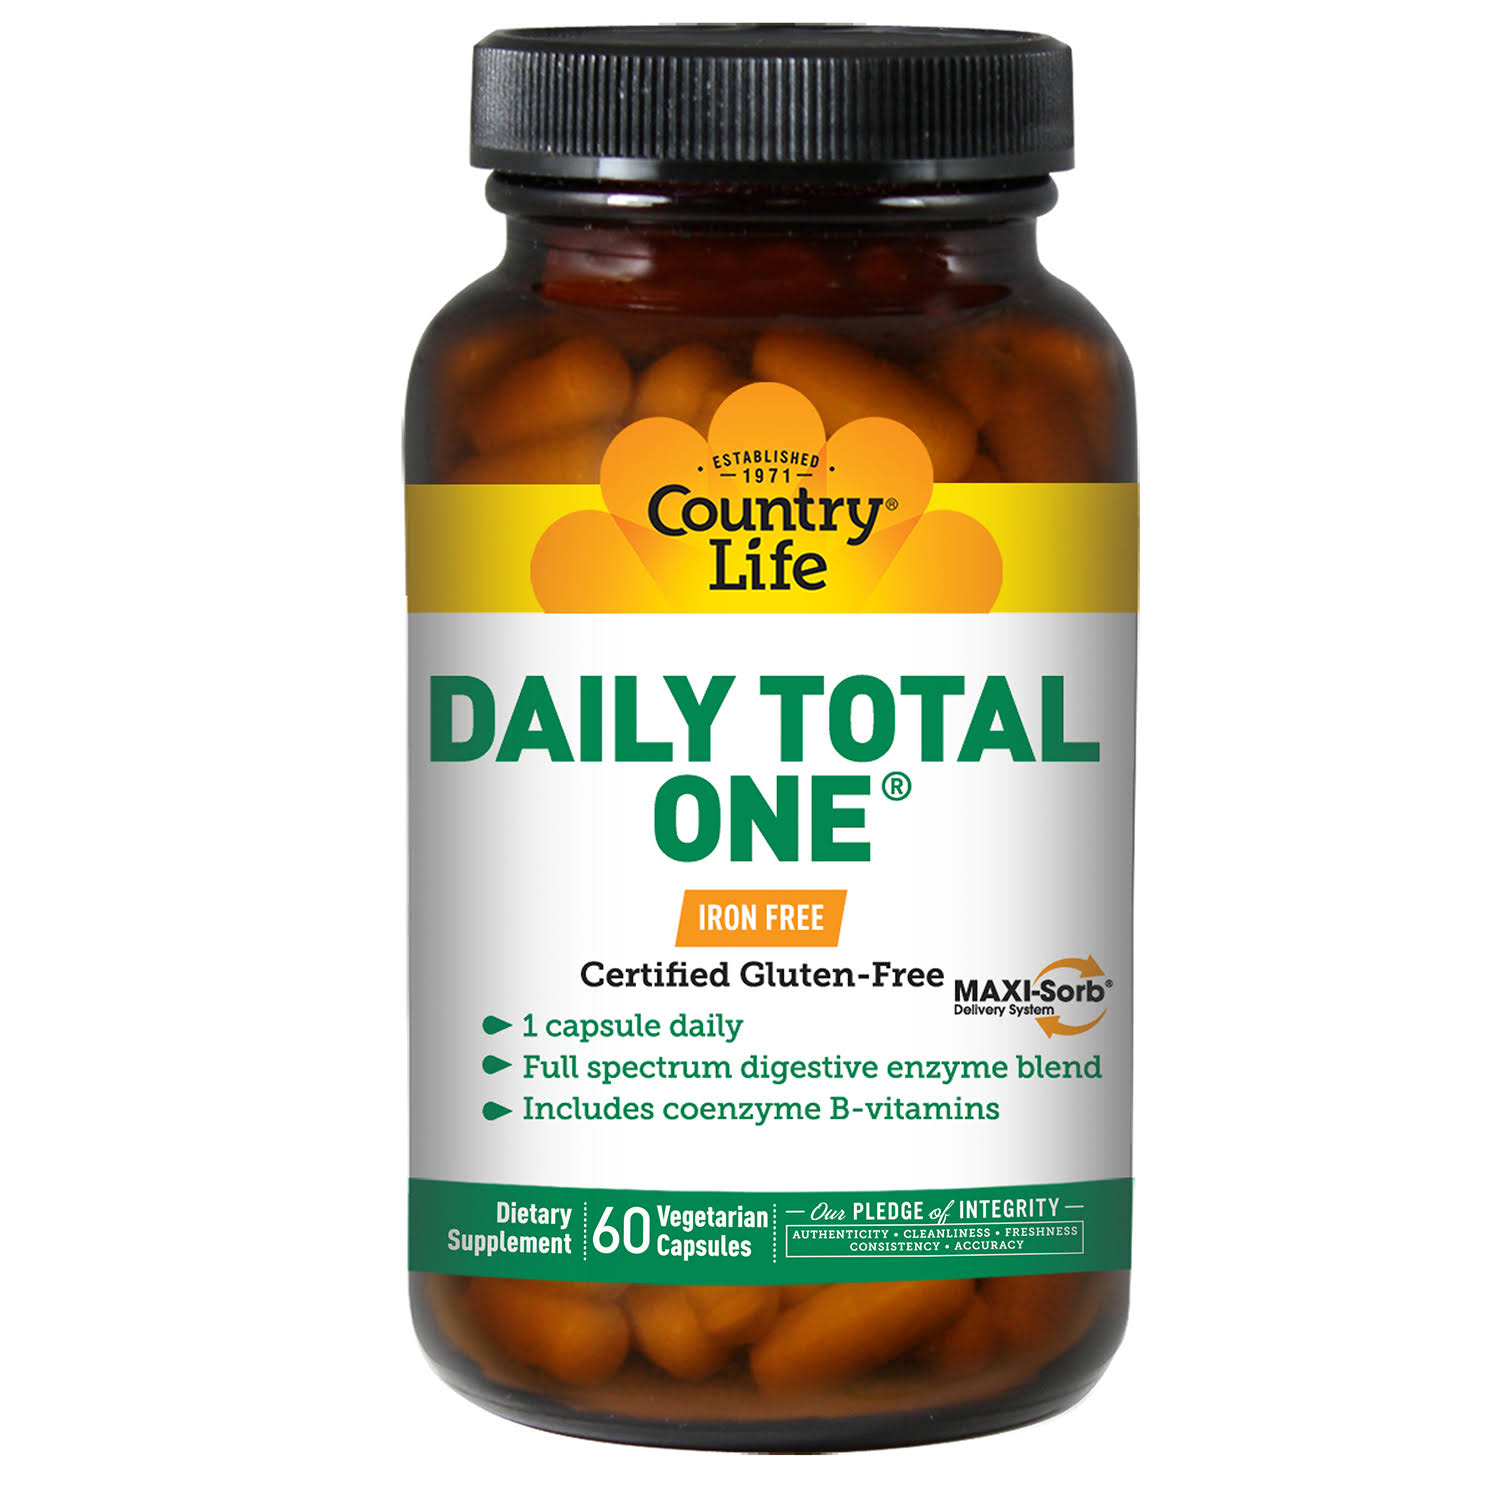 Country Life Daily Total One - 60 Vegetarian Capsules